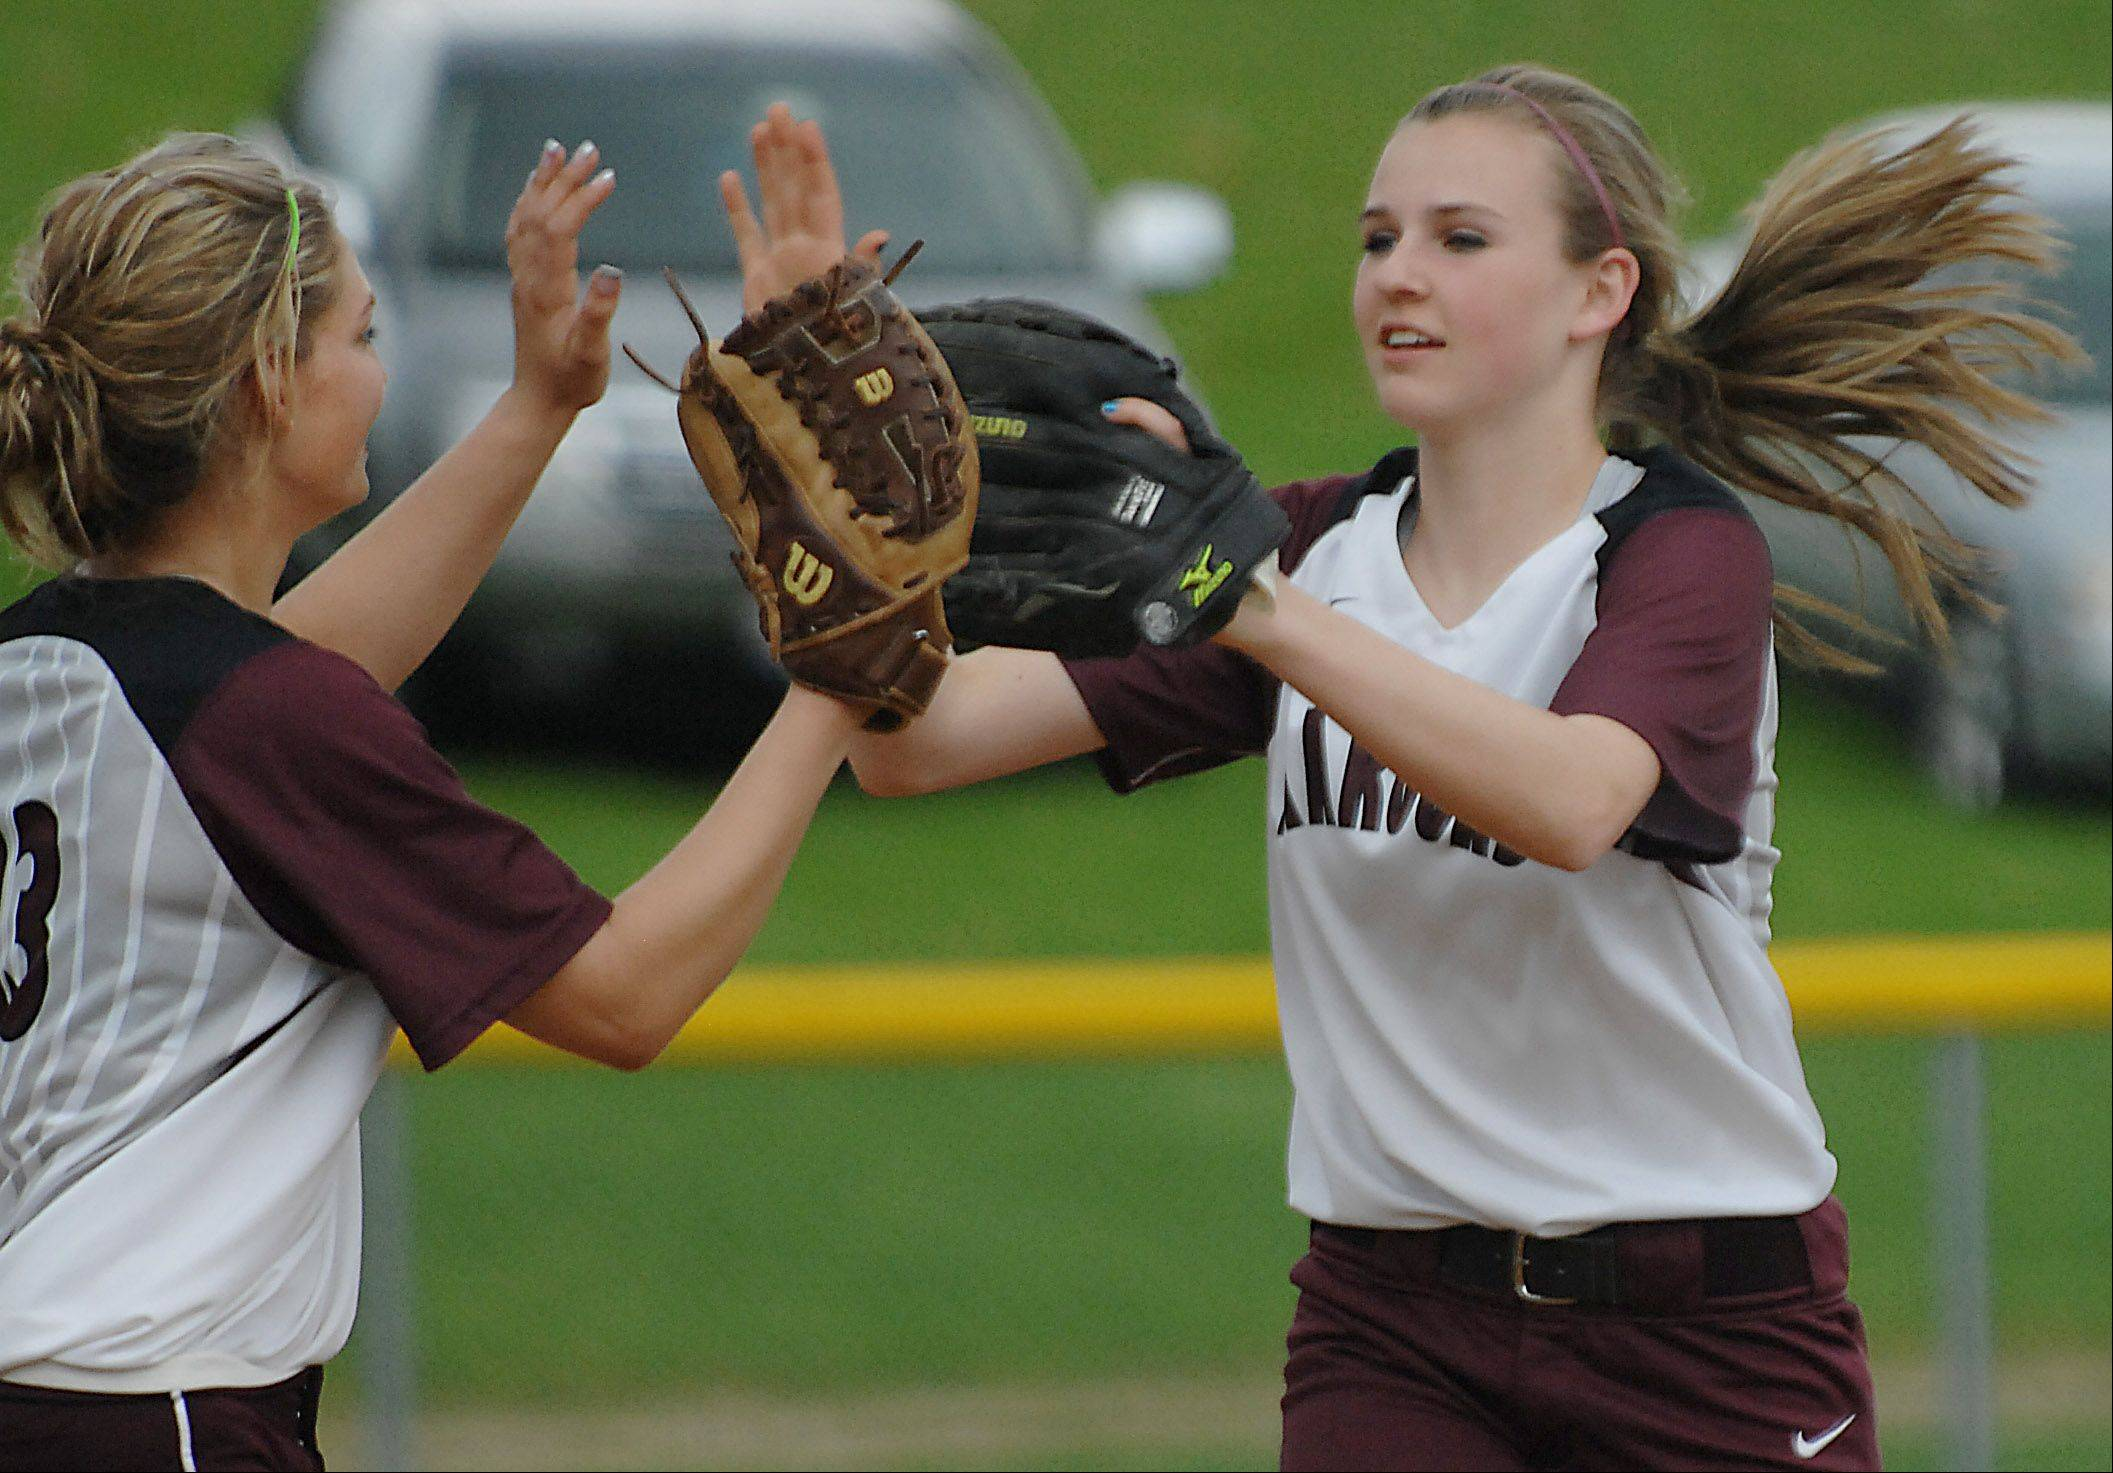 Elgin Bri Wright is met by pitcher Hannah Perryman after recording the third out of the sixth inning on a good defensive play to rob Batavia's Katie Ryan of a hit Wednesday in Elgin. Elgin won 1-0.